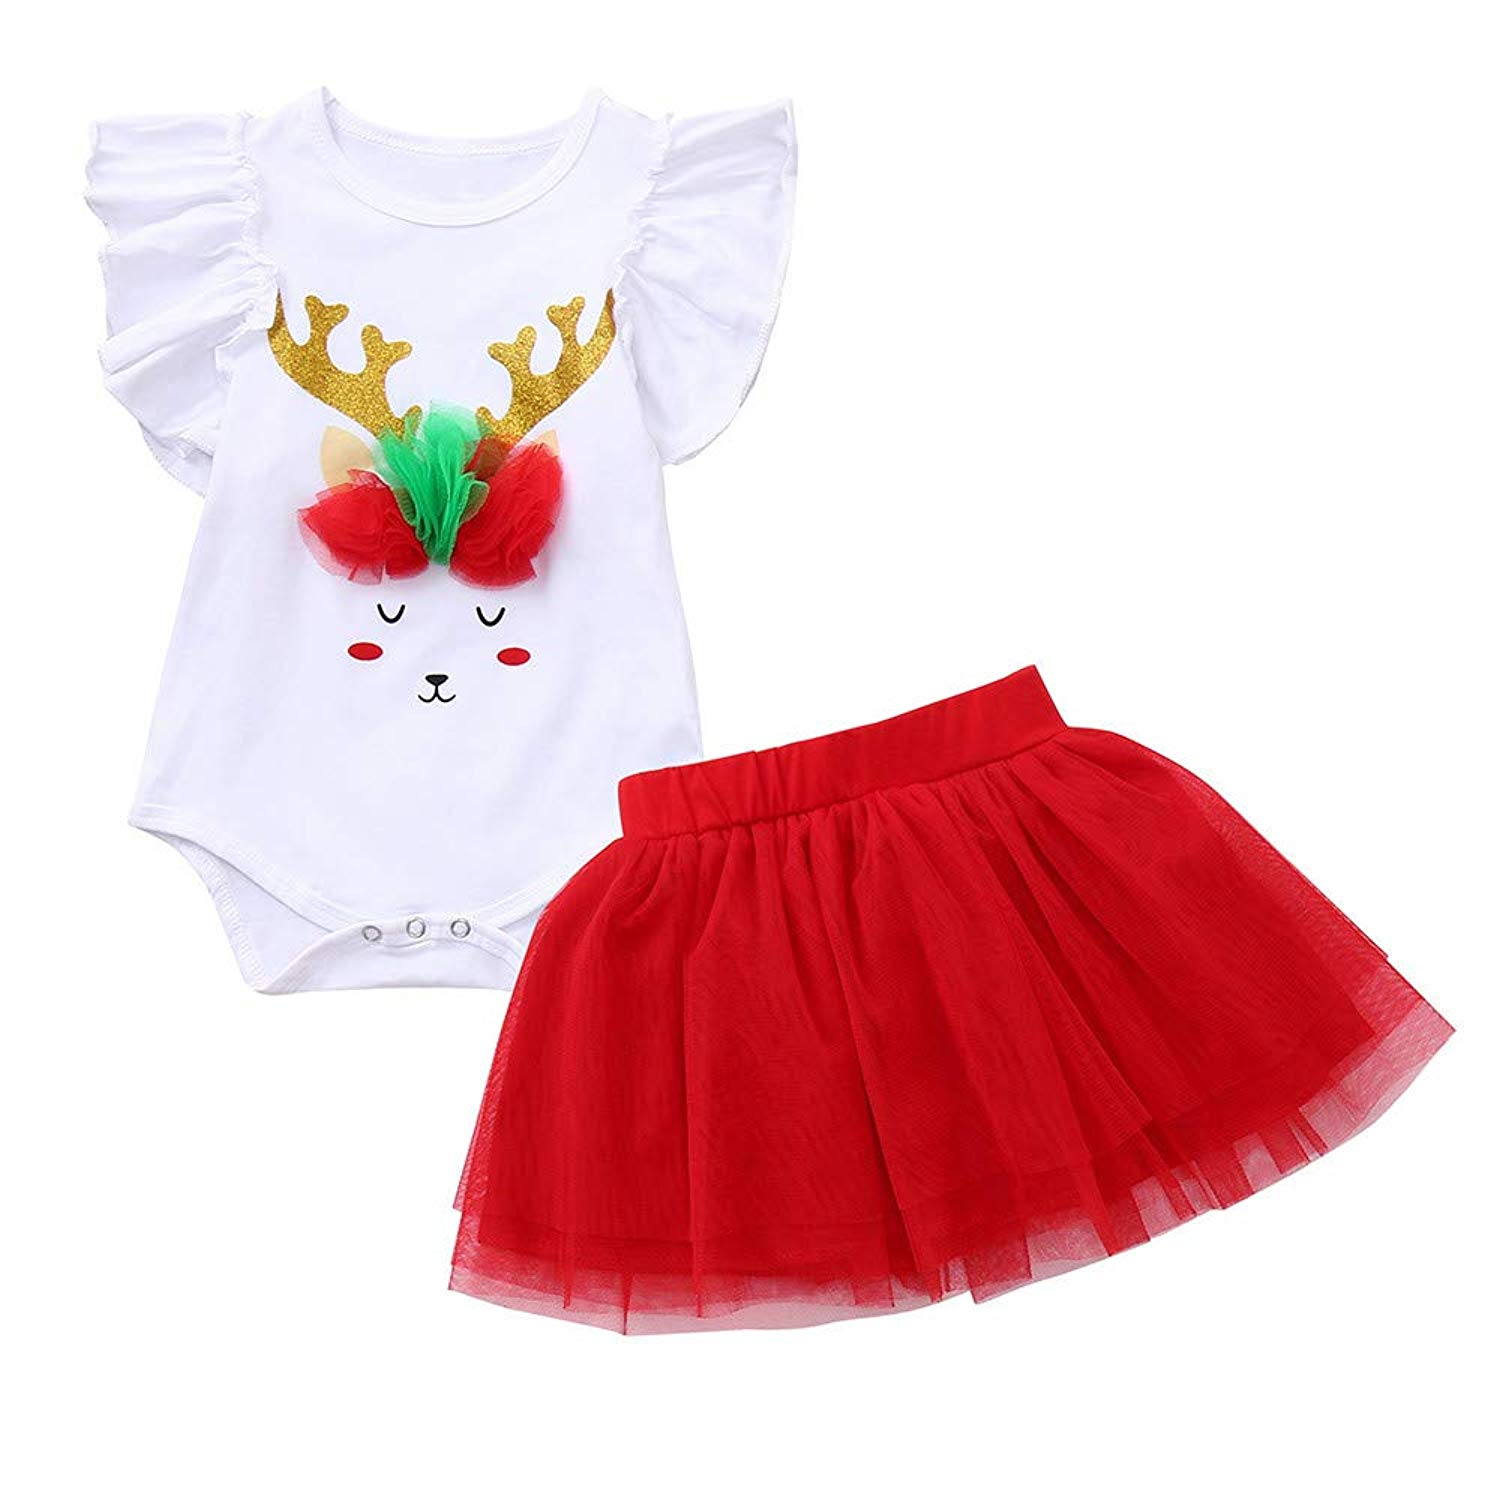 5edb675cc Get Quotations · AMSKY❤ Baby Outfit Hangers,Infant Baby Girls Short Sleeve  Christmas Antlers Jumpsuit Romper+